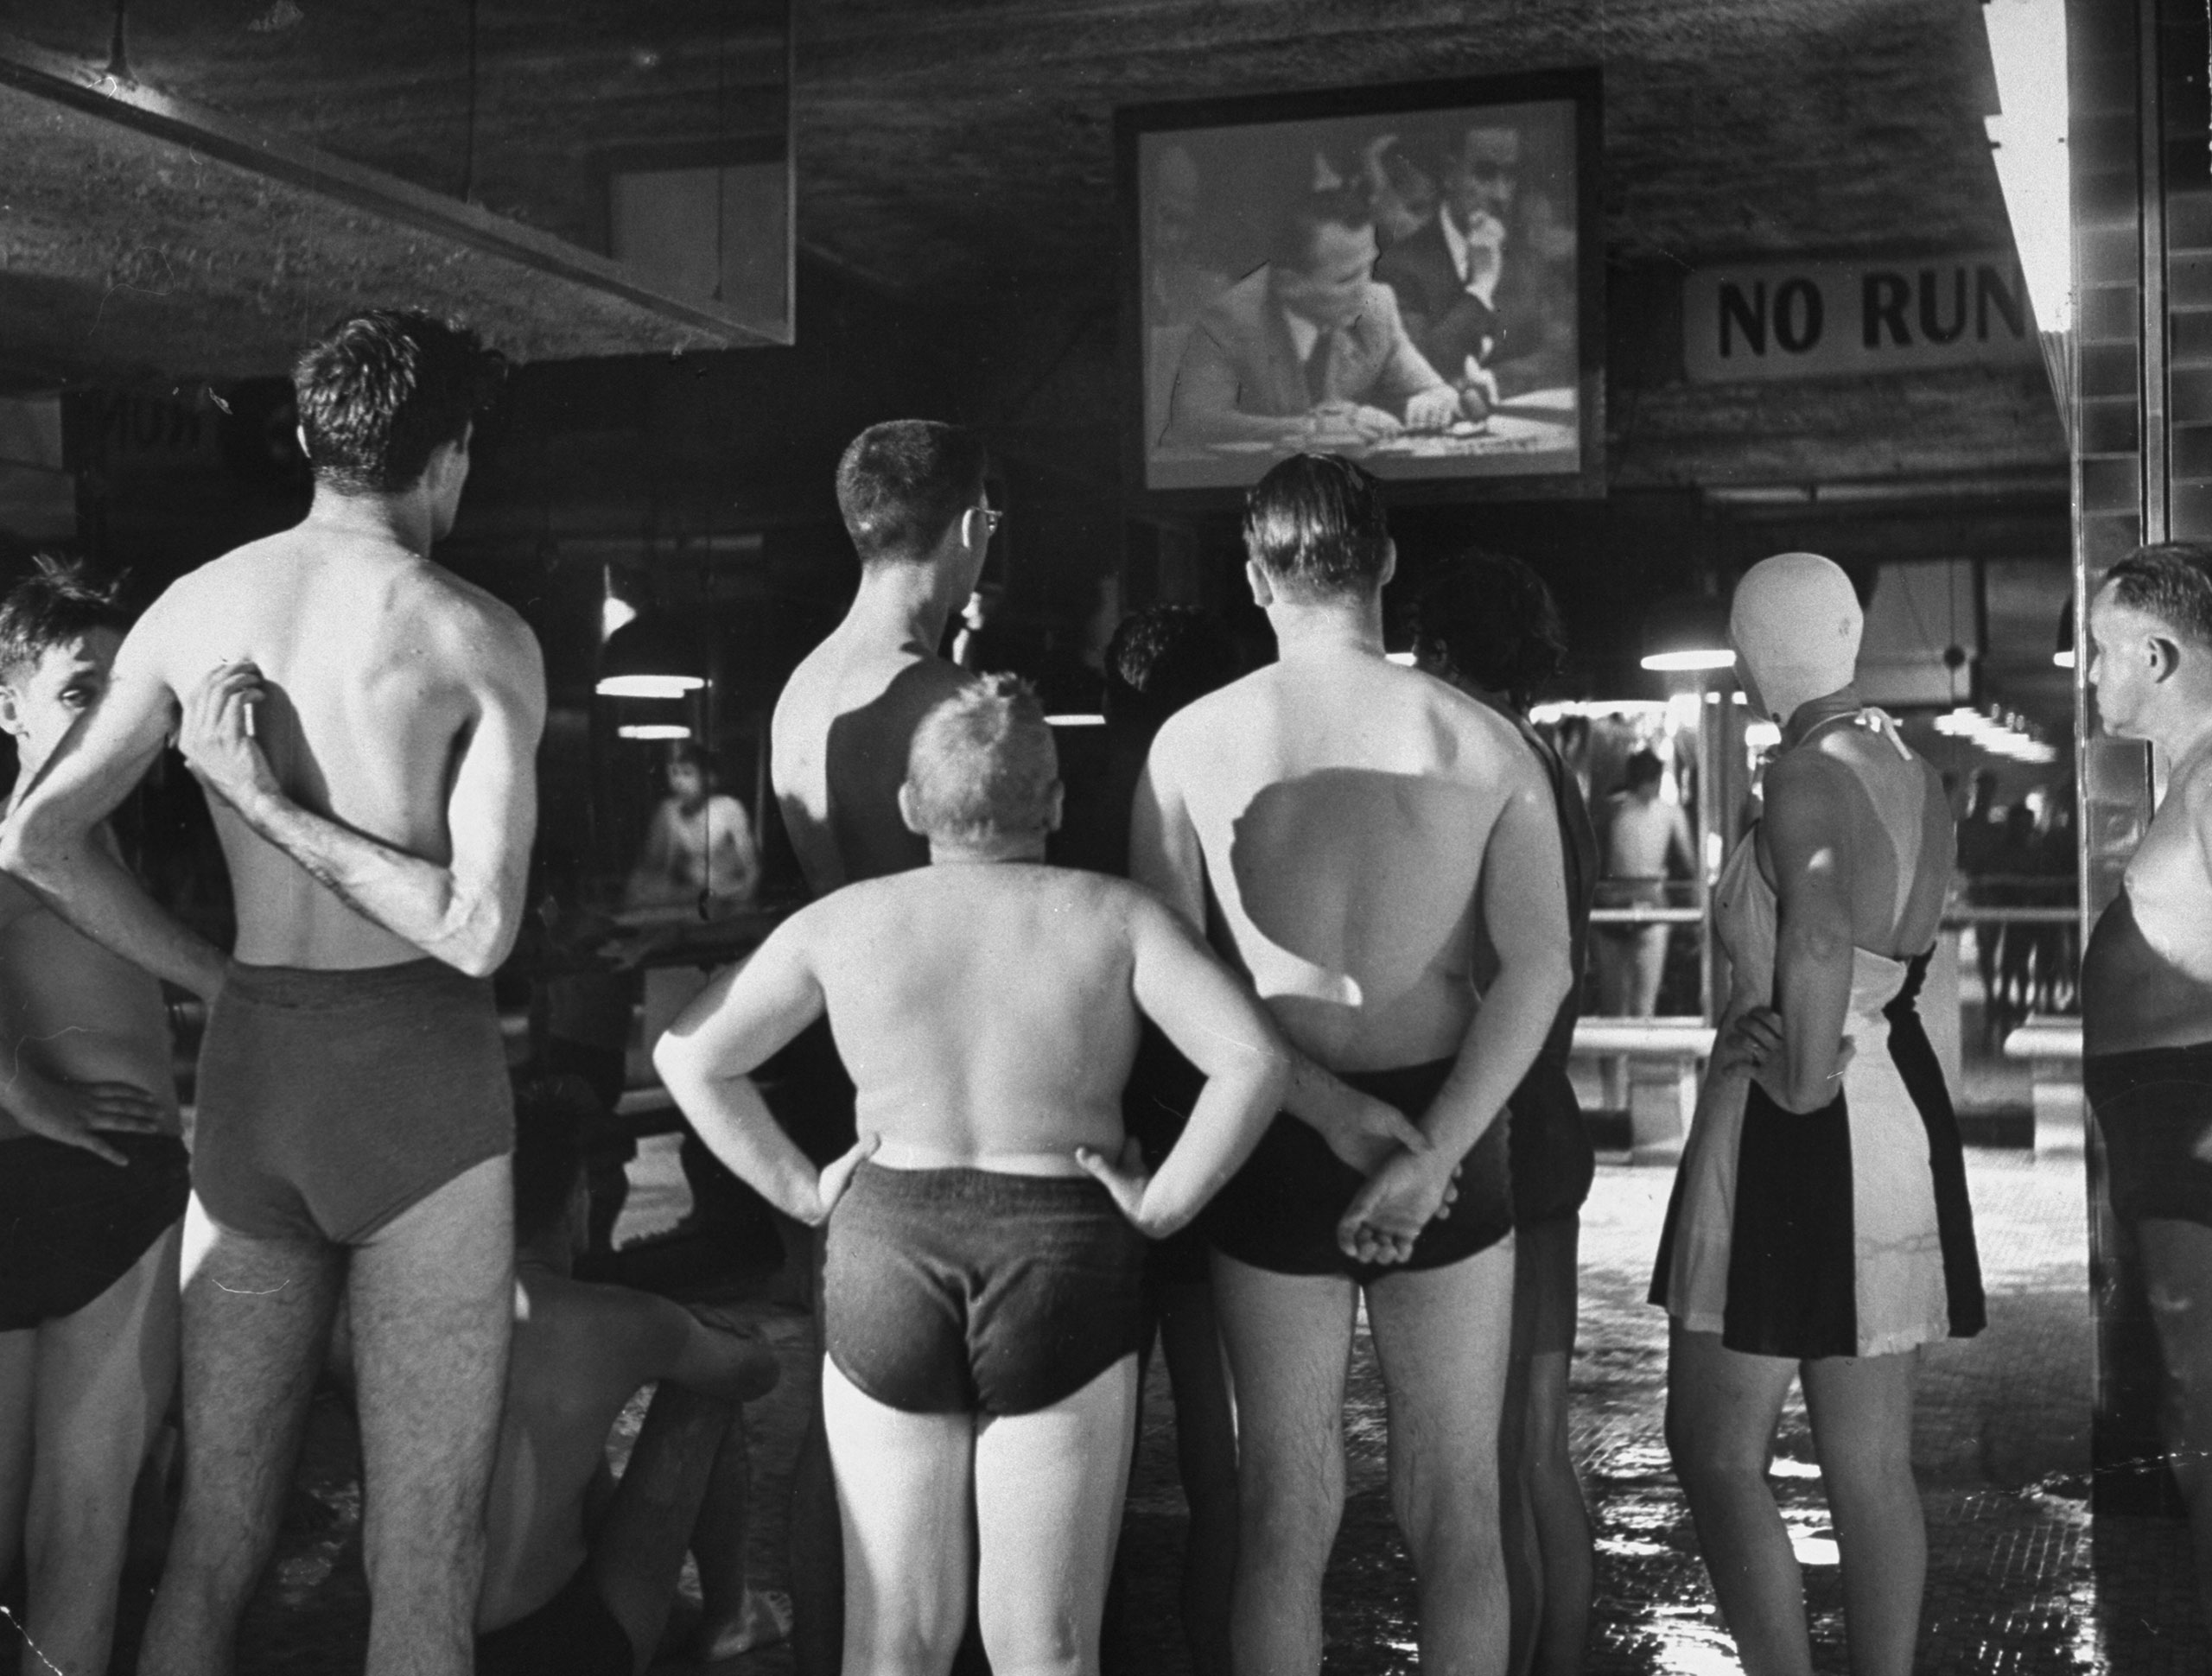 A group of swimmers at an indoor pool watch the Russian ambassador to the United Nations, Jacob Malik, filibustering in the UN Security Council in 1950.